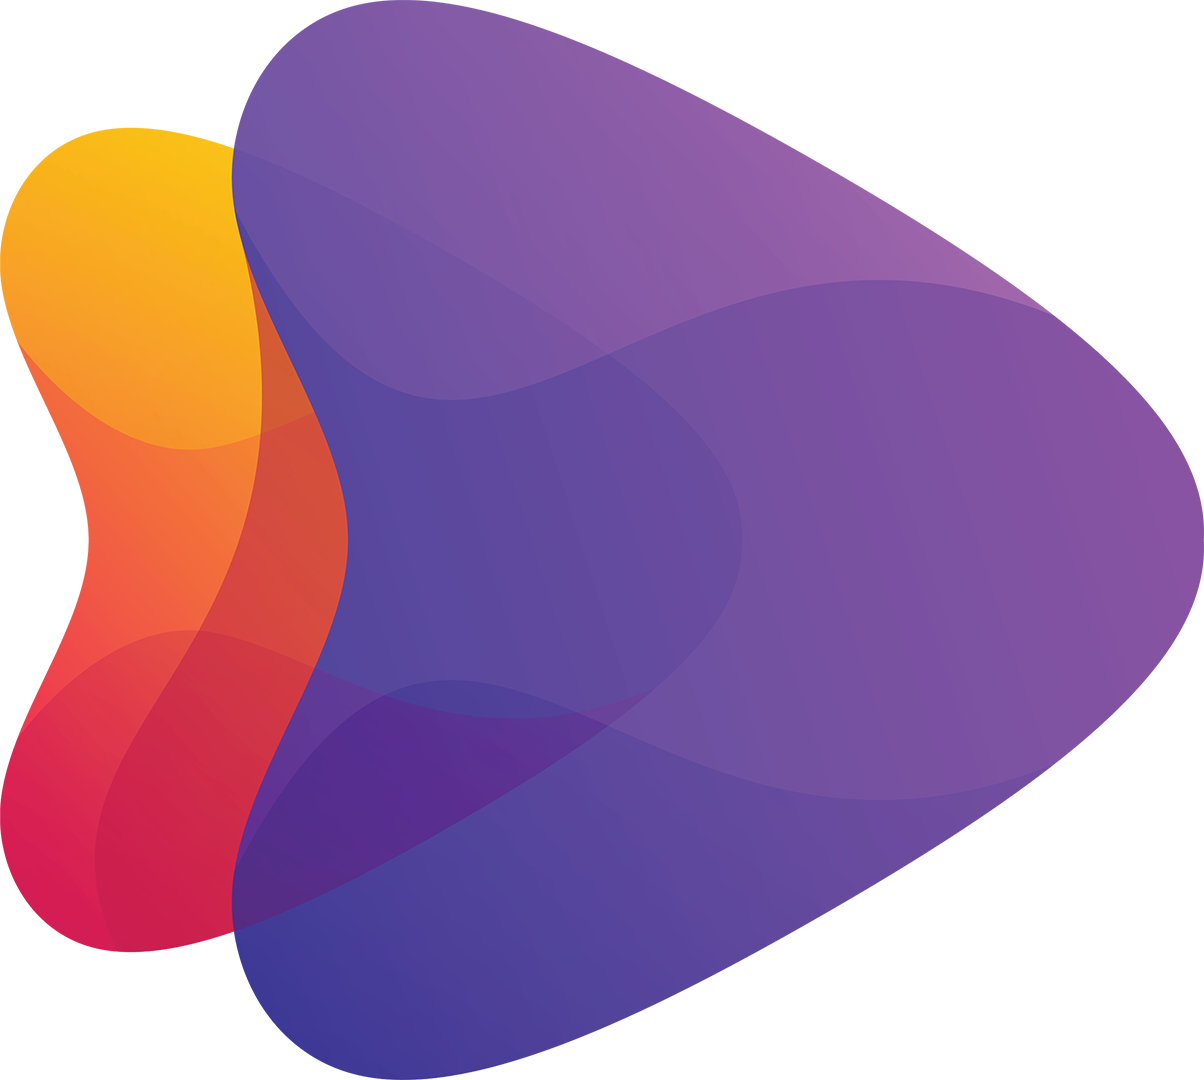 two stylized arrowheads, one orange, one purple, pointing right